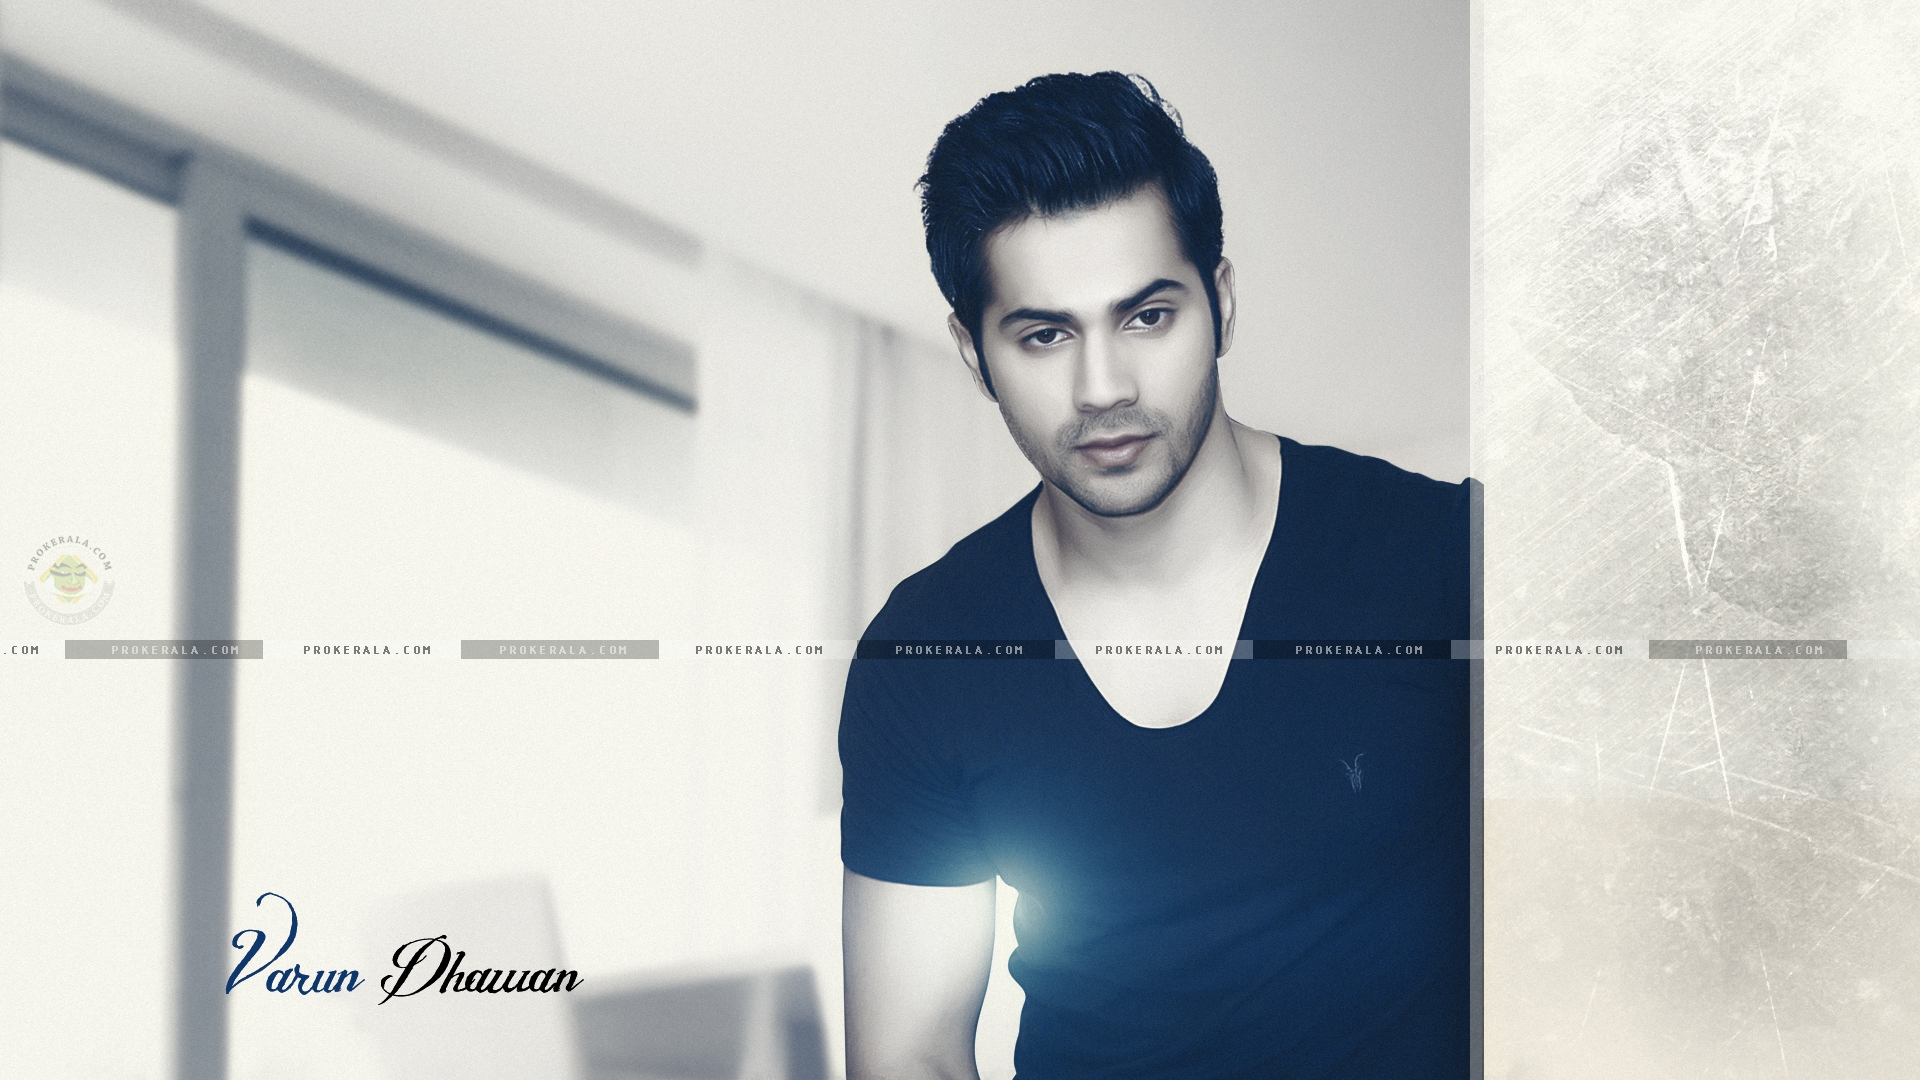 varun dhawan karuna dhawan next previous filmfare pictures